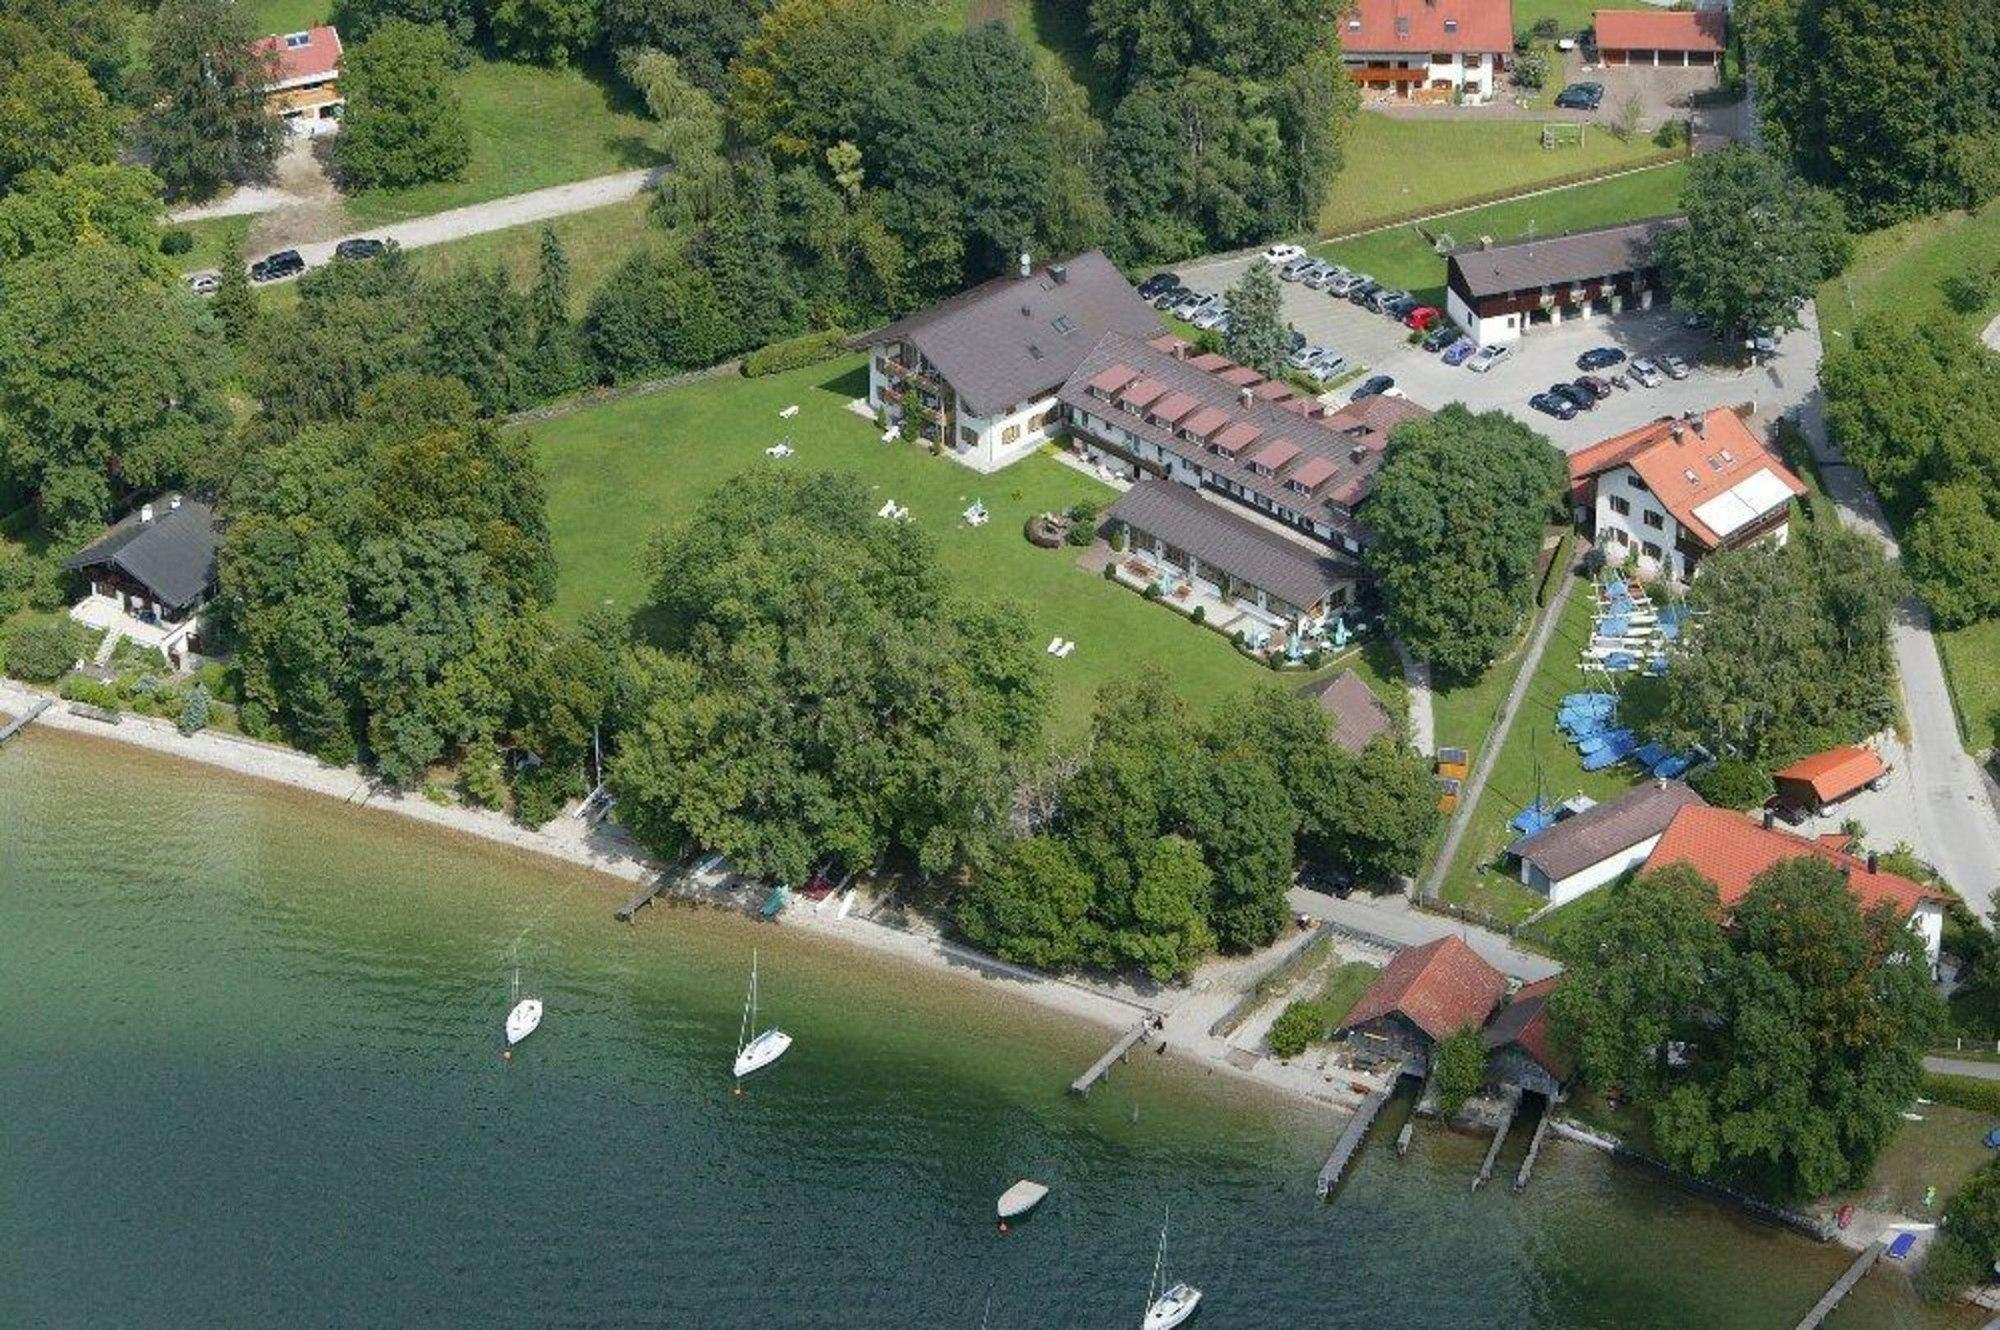 Landhotel Huber am See in Ambach